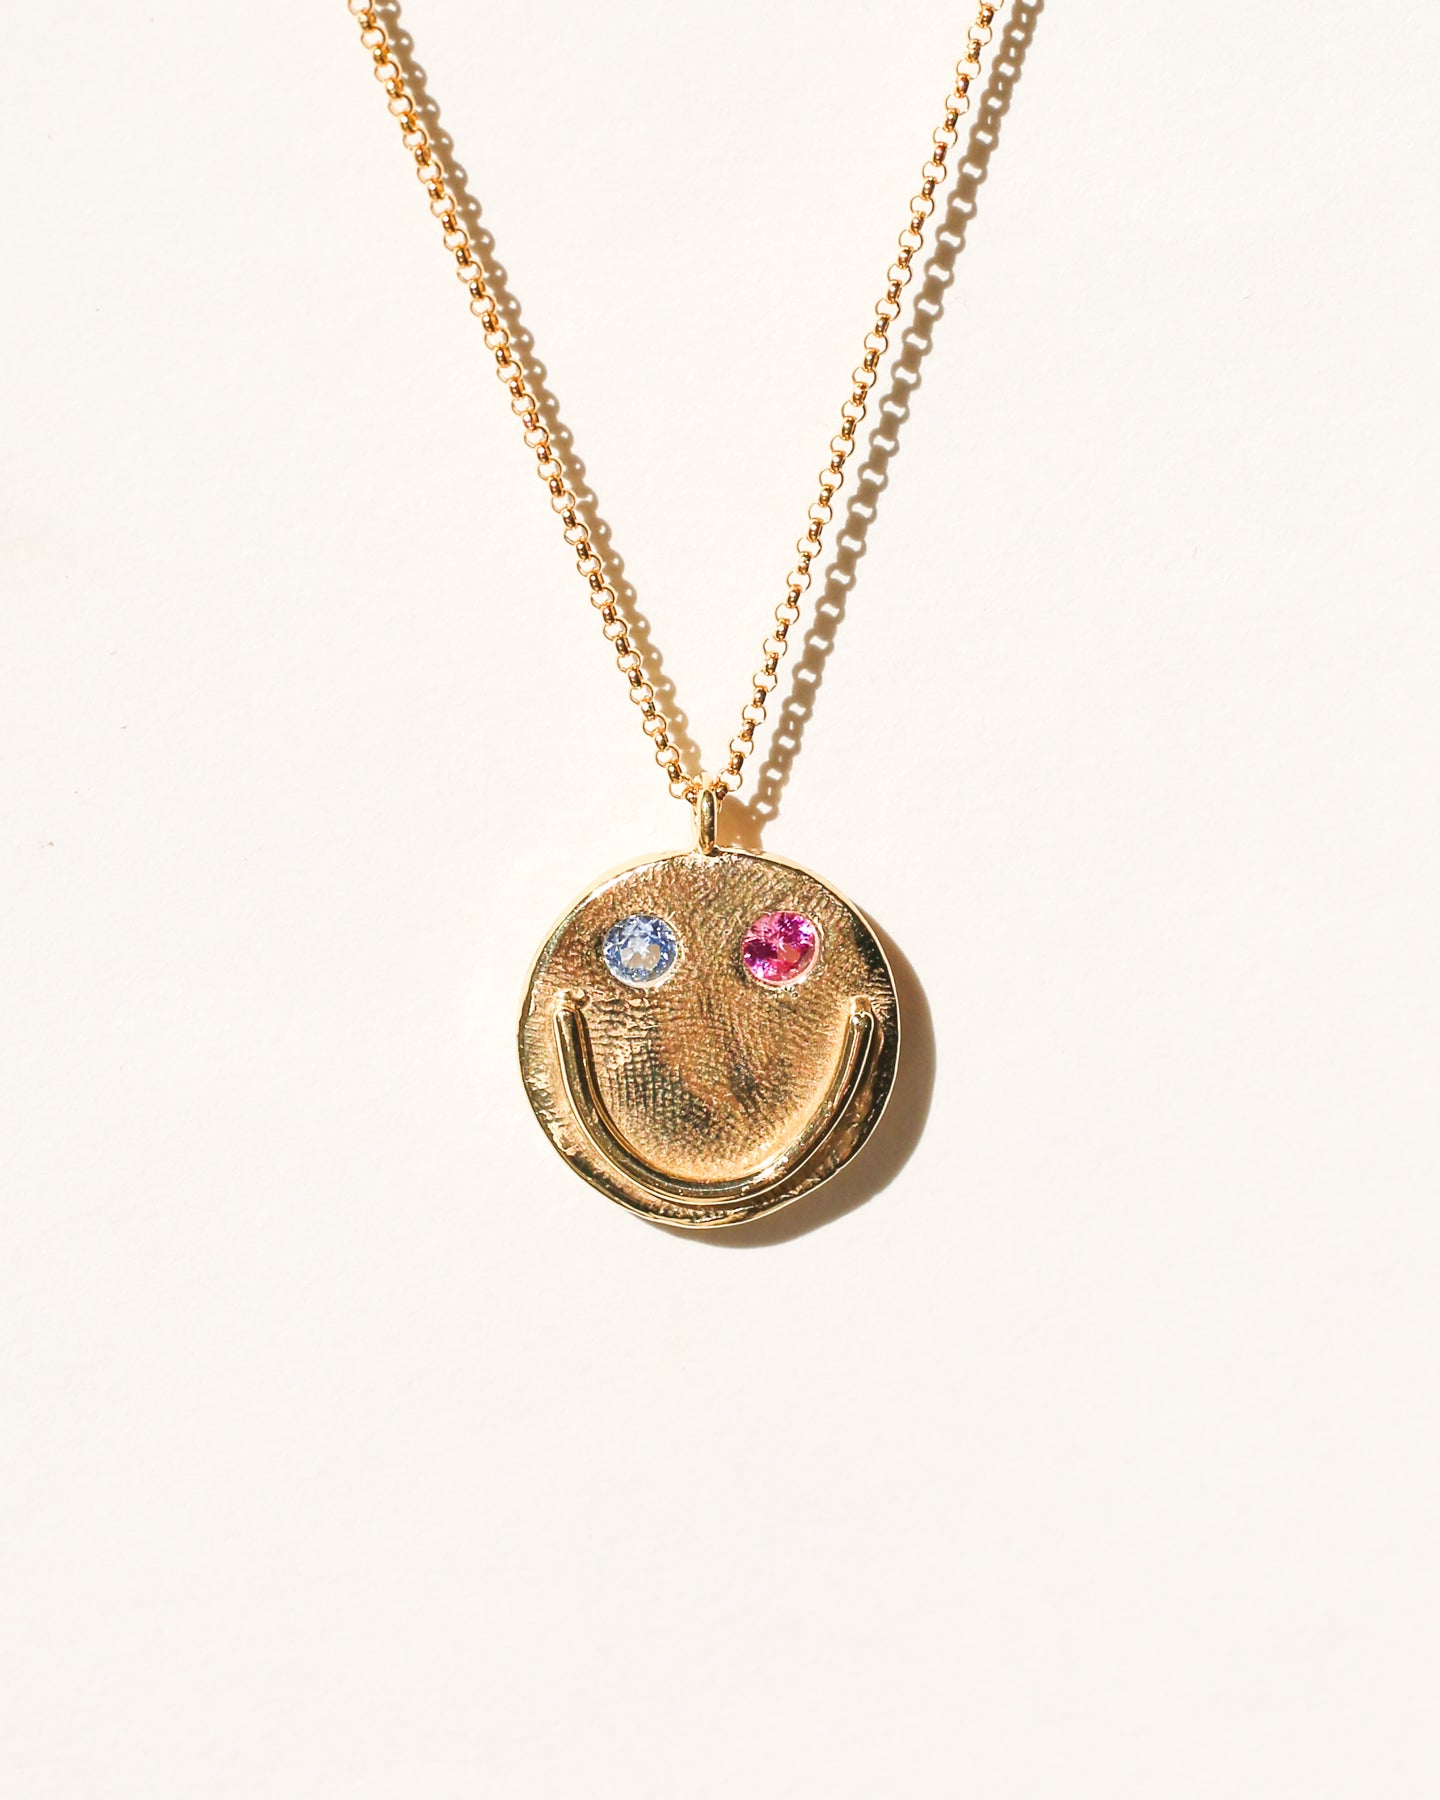 GOOD FRIEND NECKLACE IN GOLD